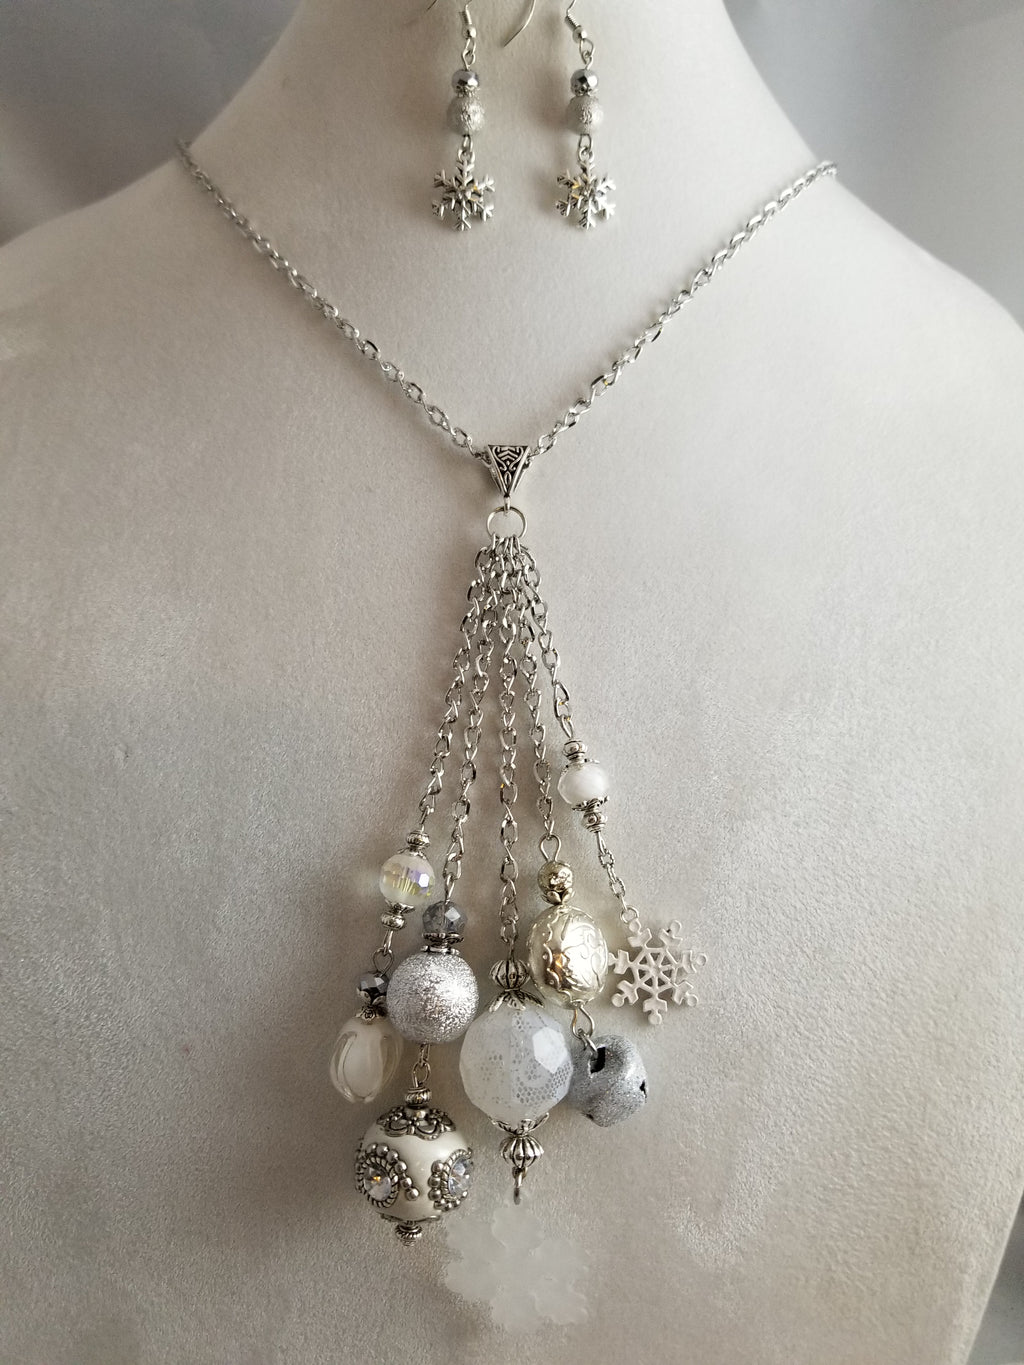 Snowflake Necklace with Earrings